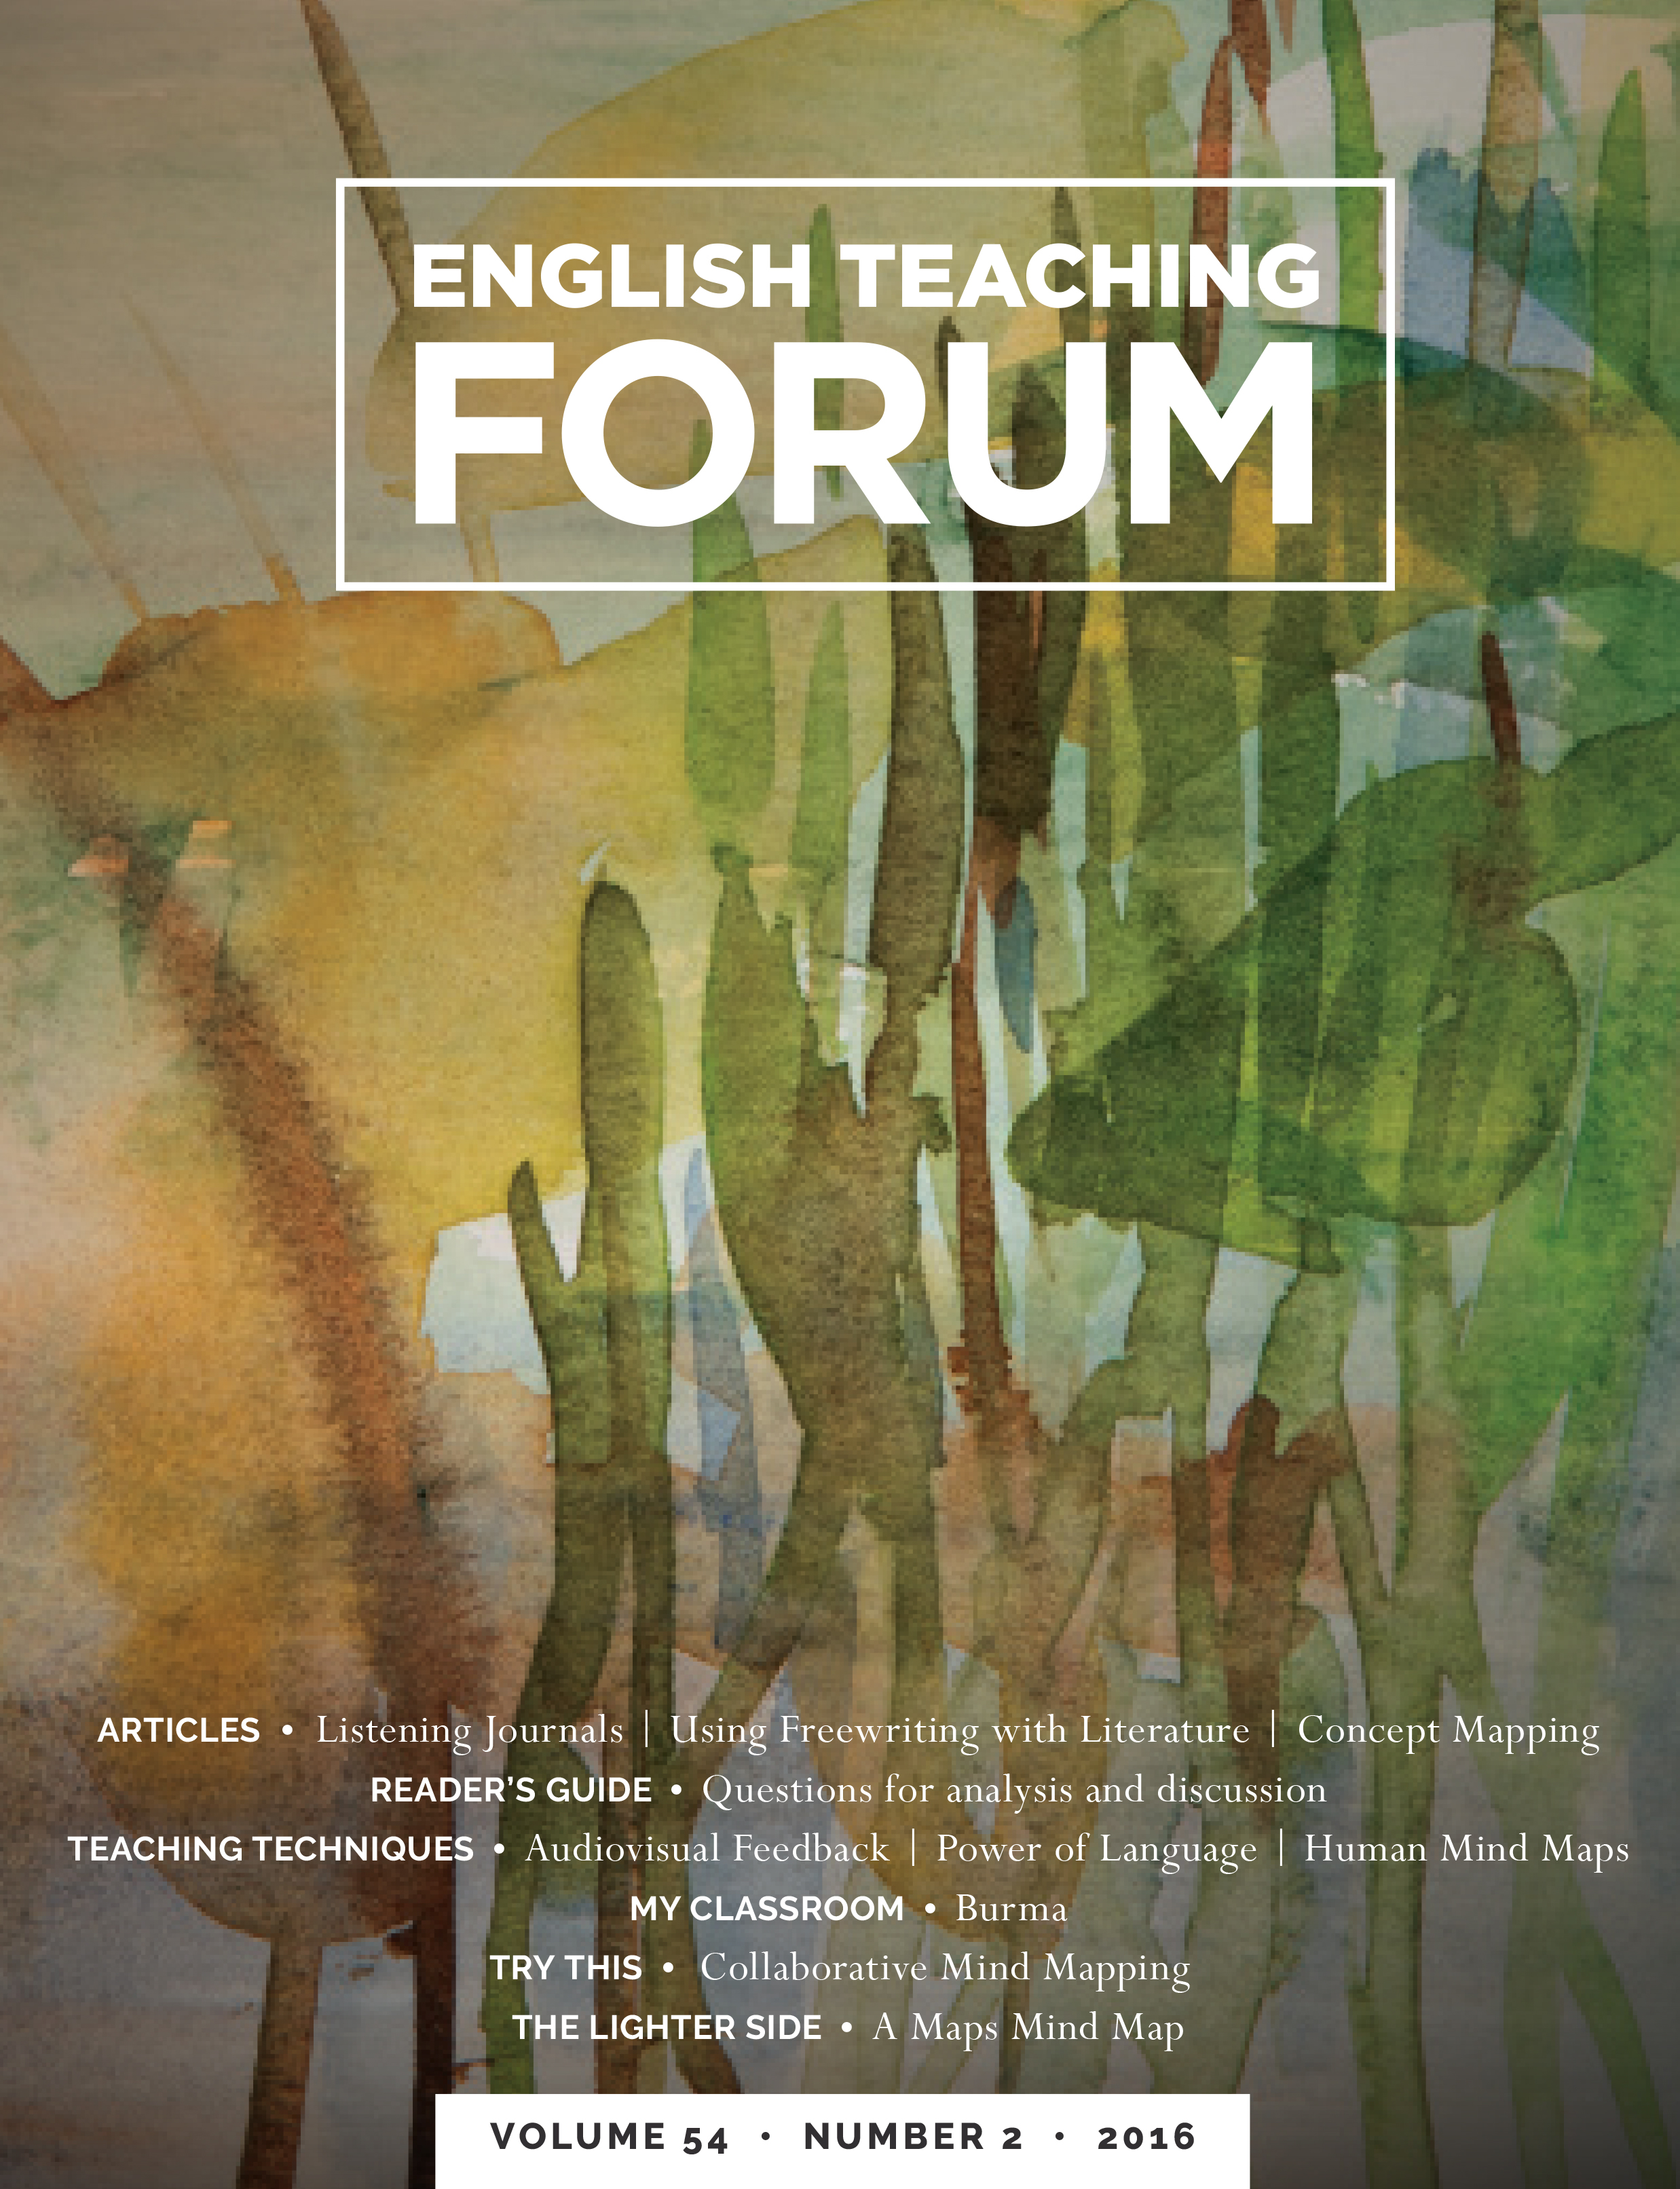 Forum cover with title and abstract watercolor design of cattails